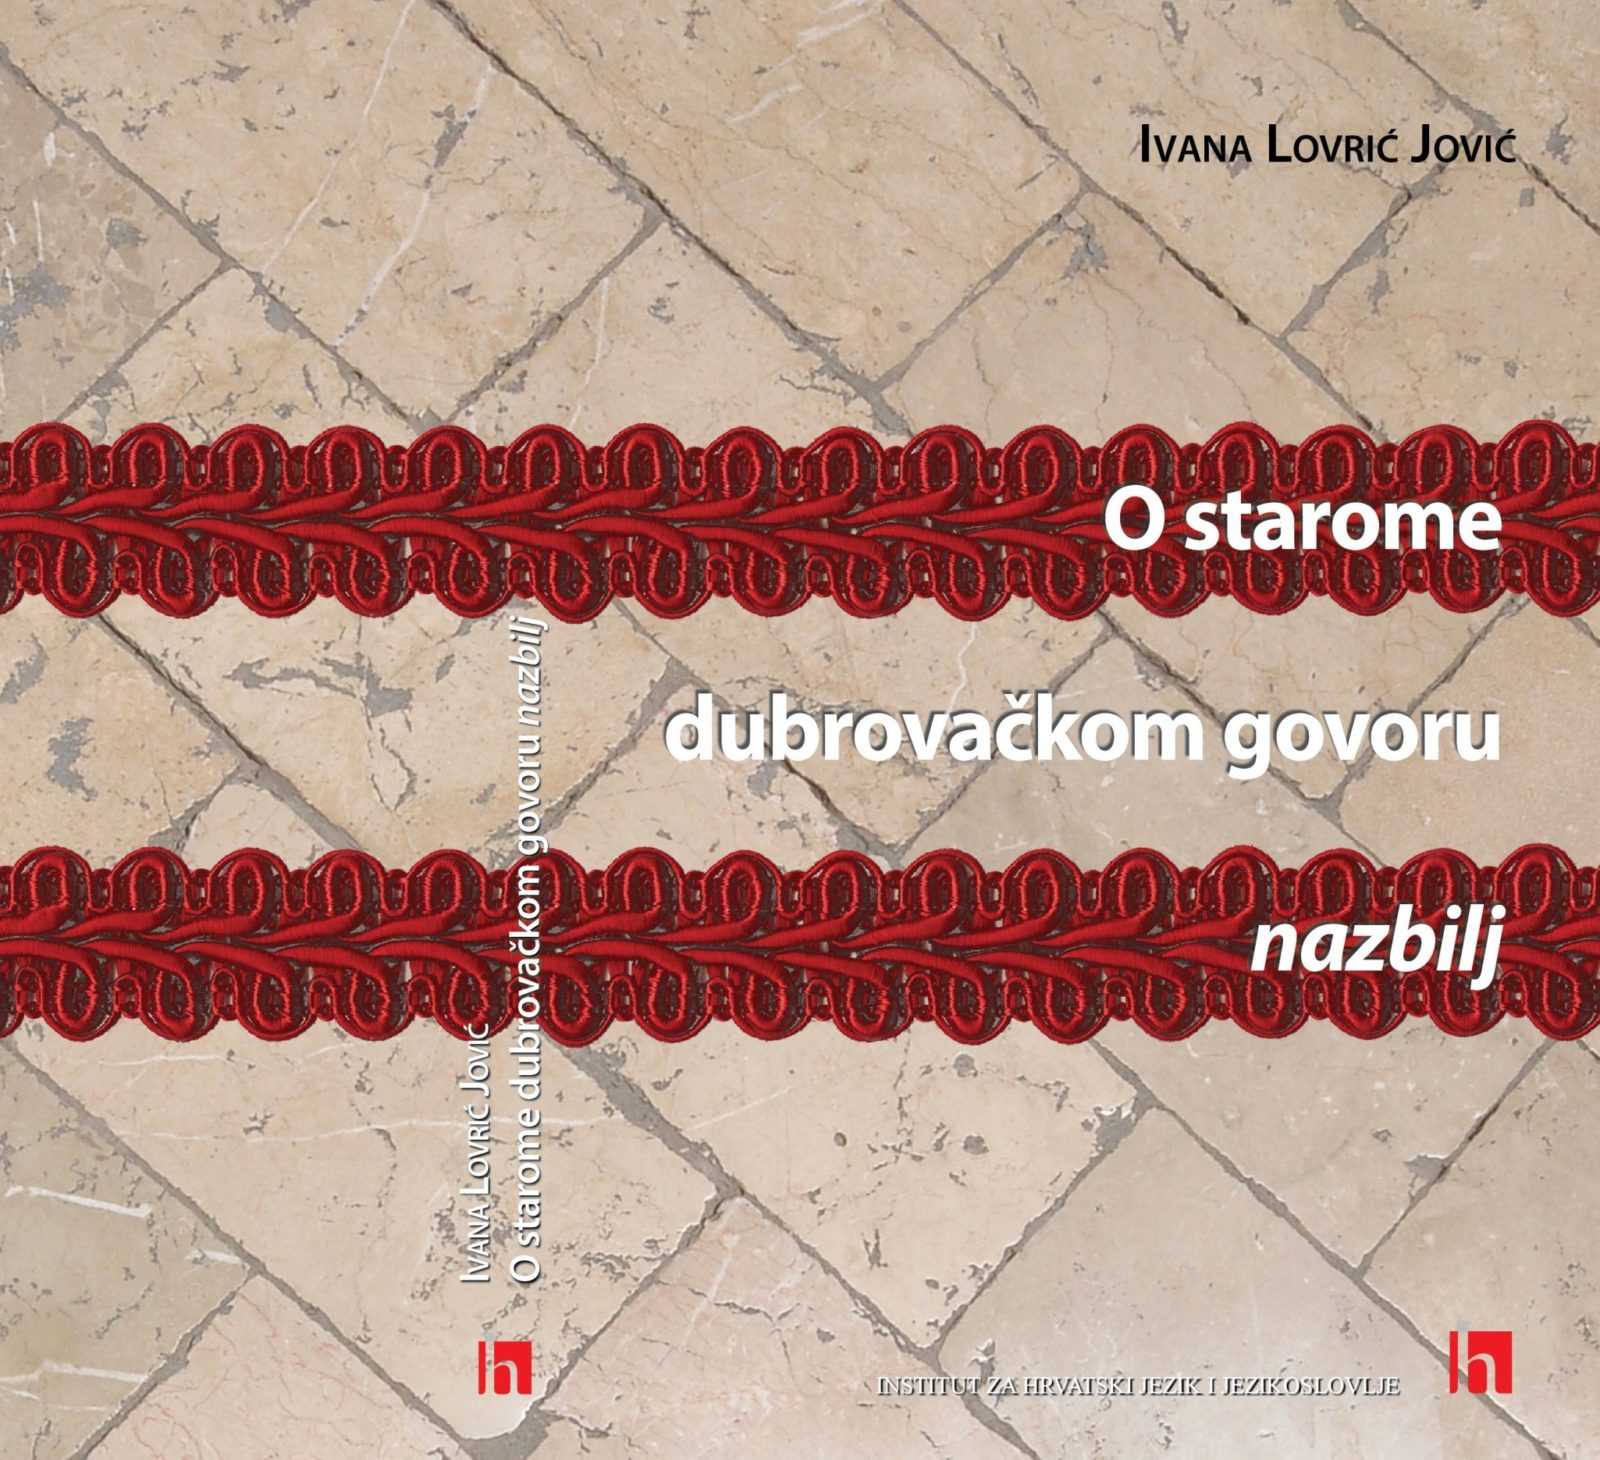 Photo of The book about Dubrovnik's speech will be promoted at the Sponza Palace